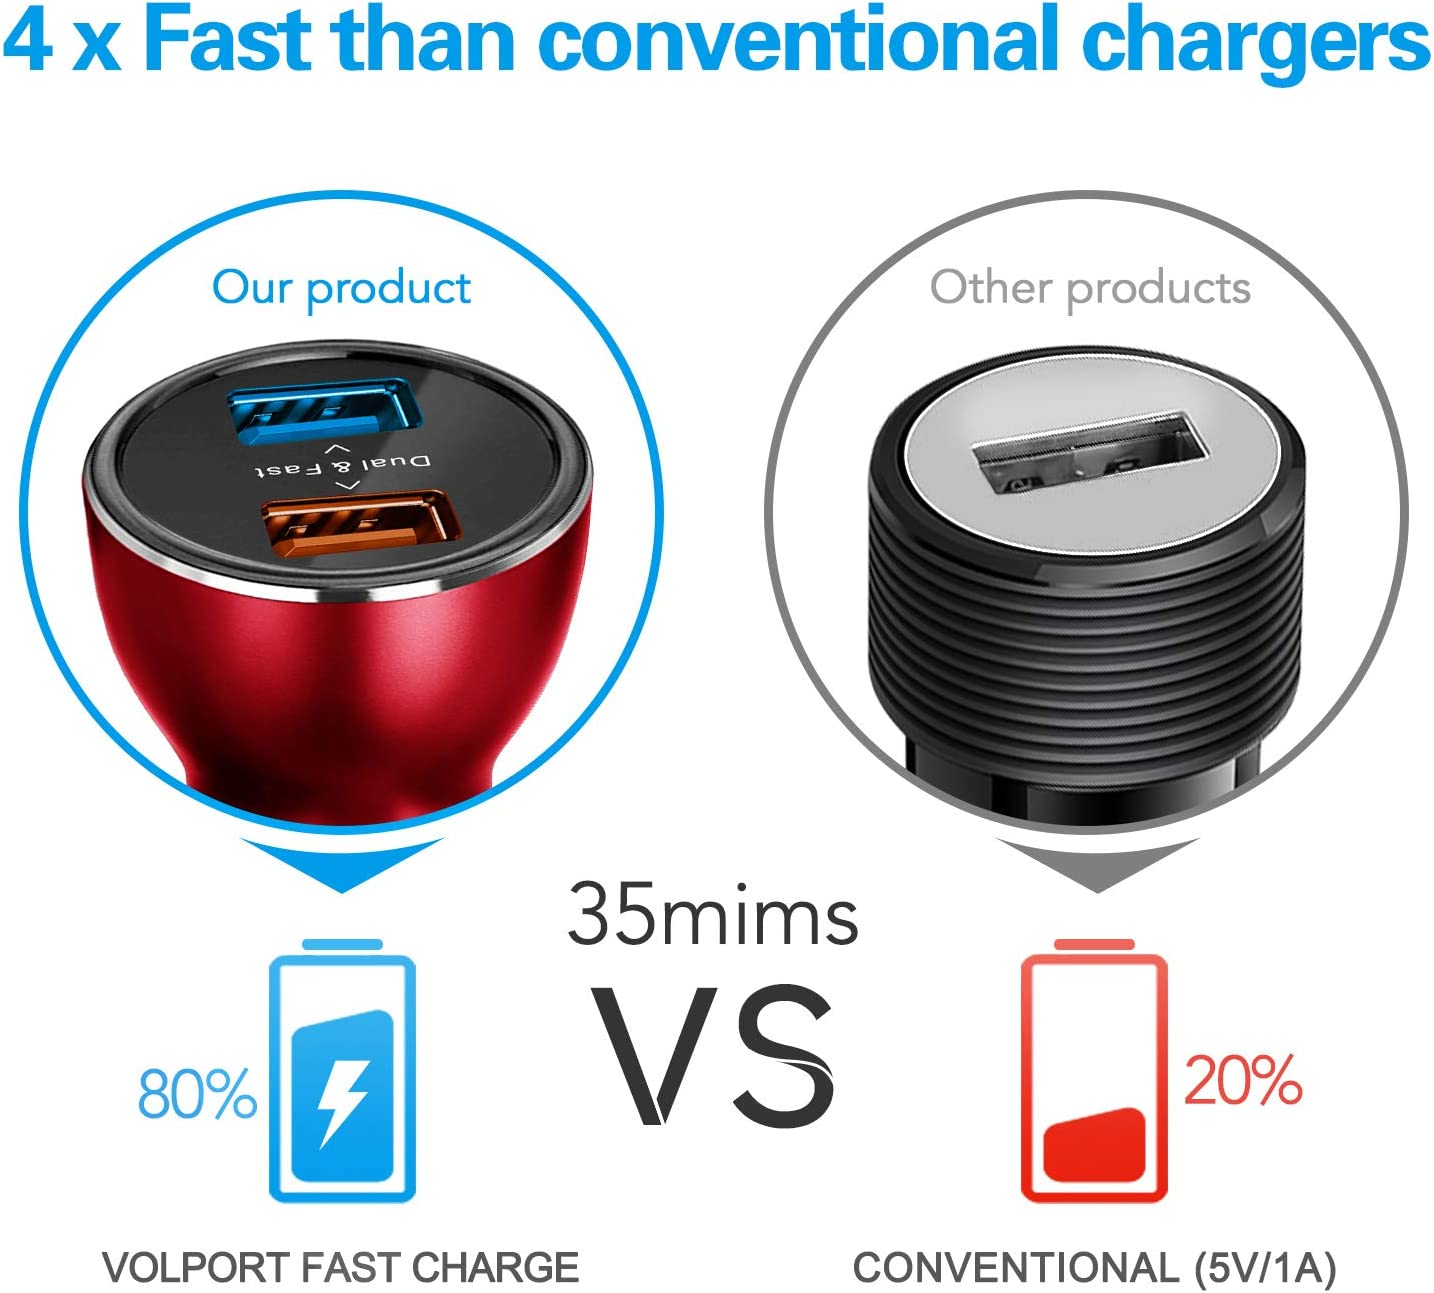 Volport Metal 3A Rapid Charge Adapter with 2 Quick Charging 3.0 Port for Android Samsung Galaxy S10 S9 S8 Note 9 Note 8 LG Sony iPhone Xs Max XR X 8 Plus iPad Mini 39W 12V Fast Dual USB Car Charger